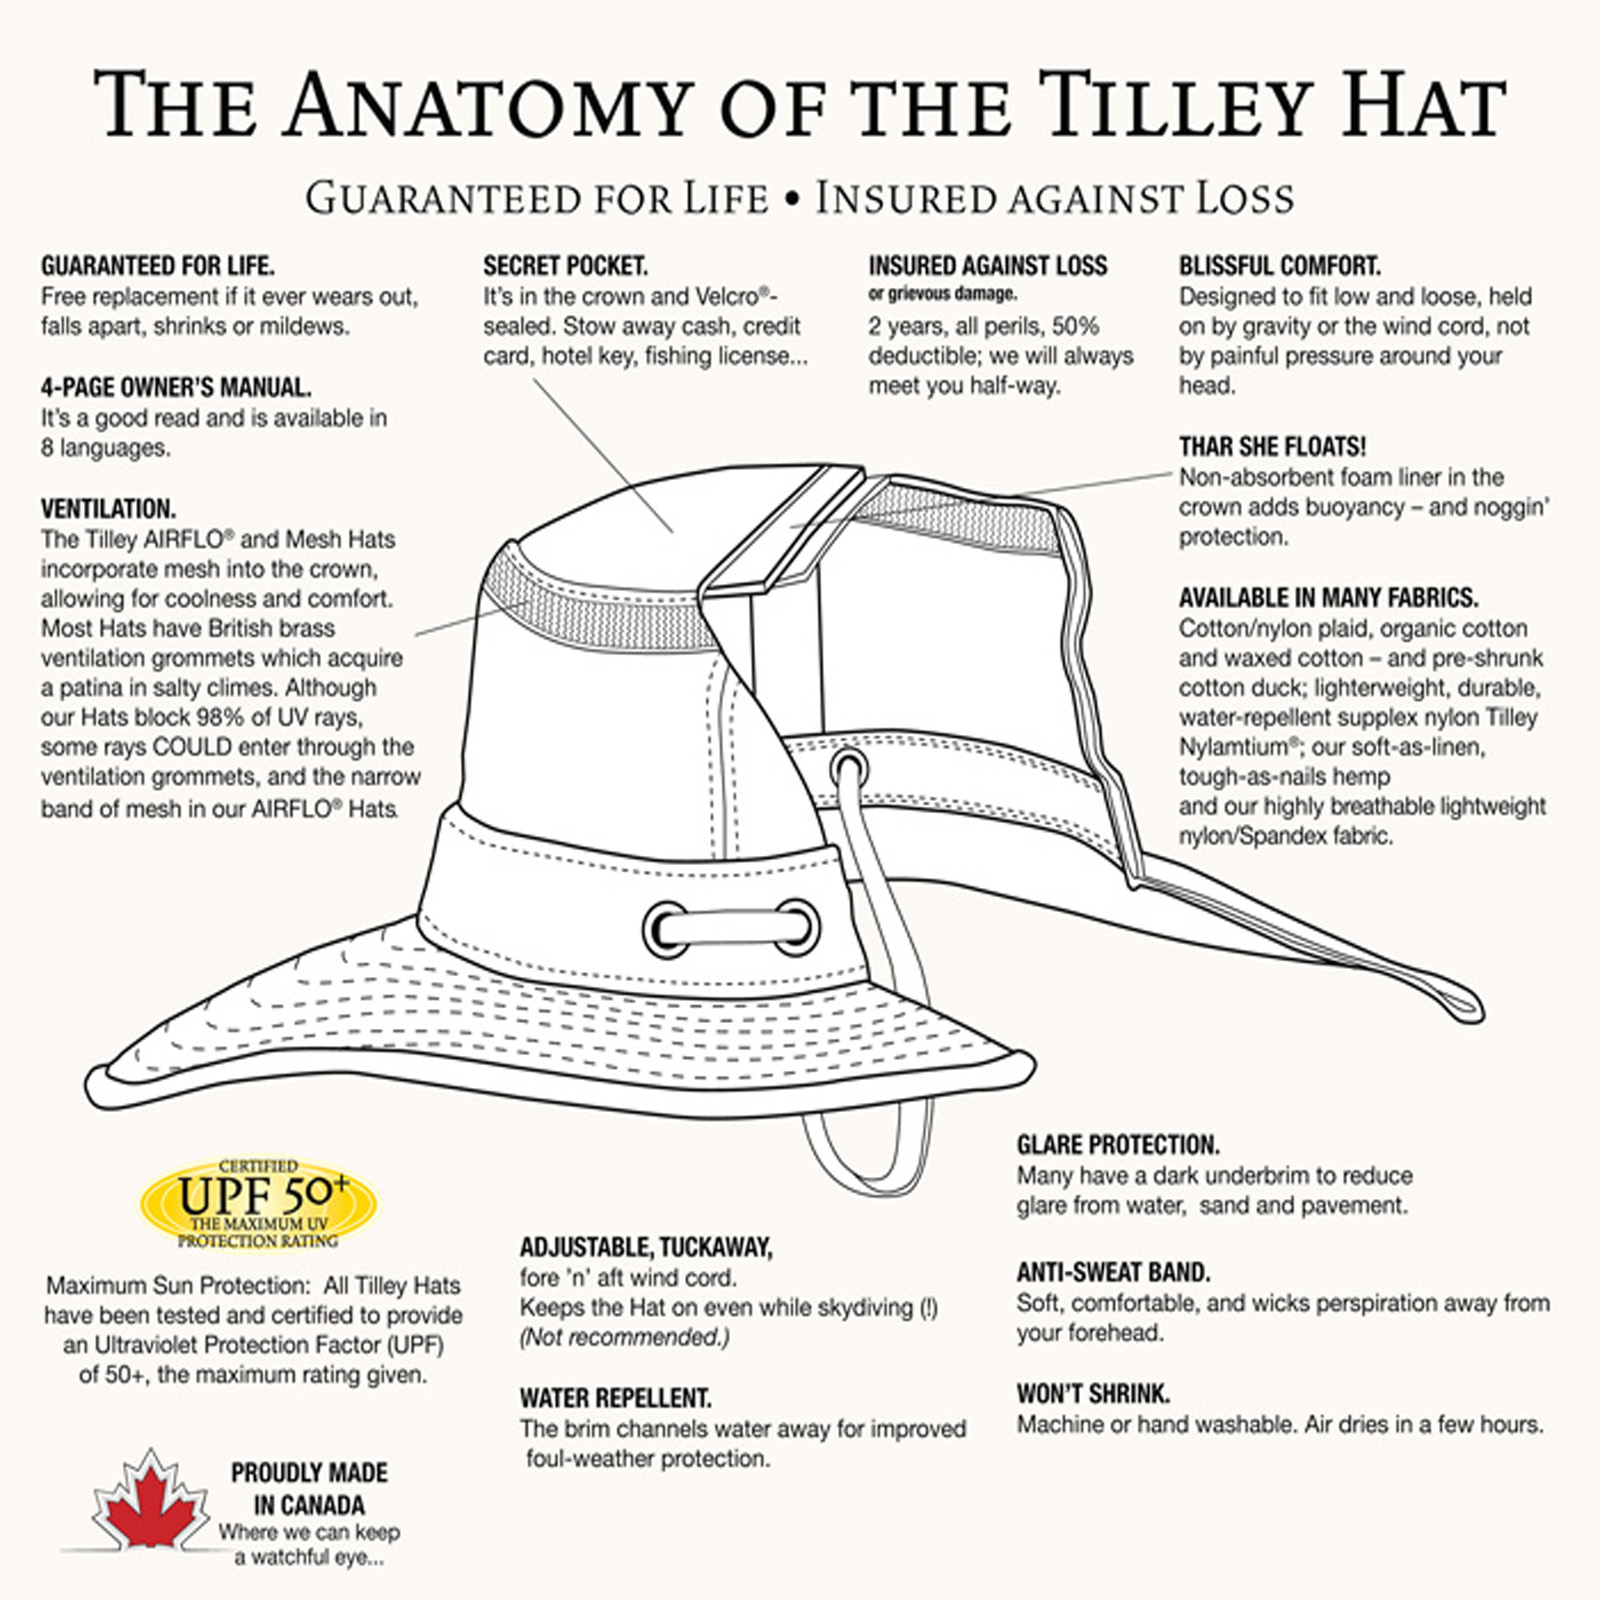 The Anatomy of the Tilley hat b32ffcb02a9